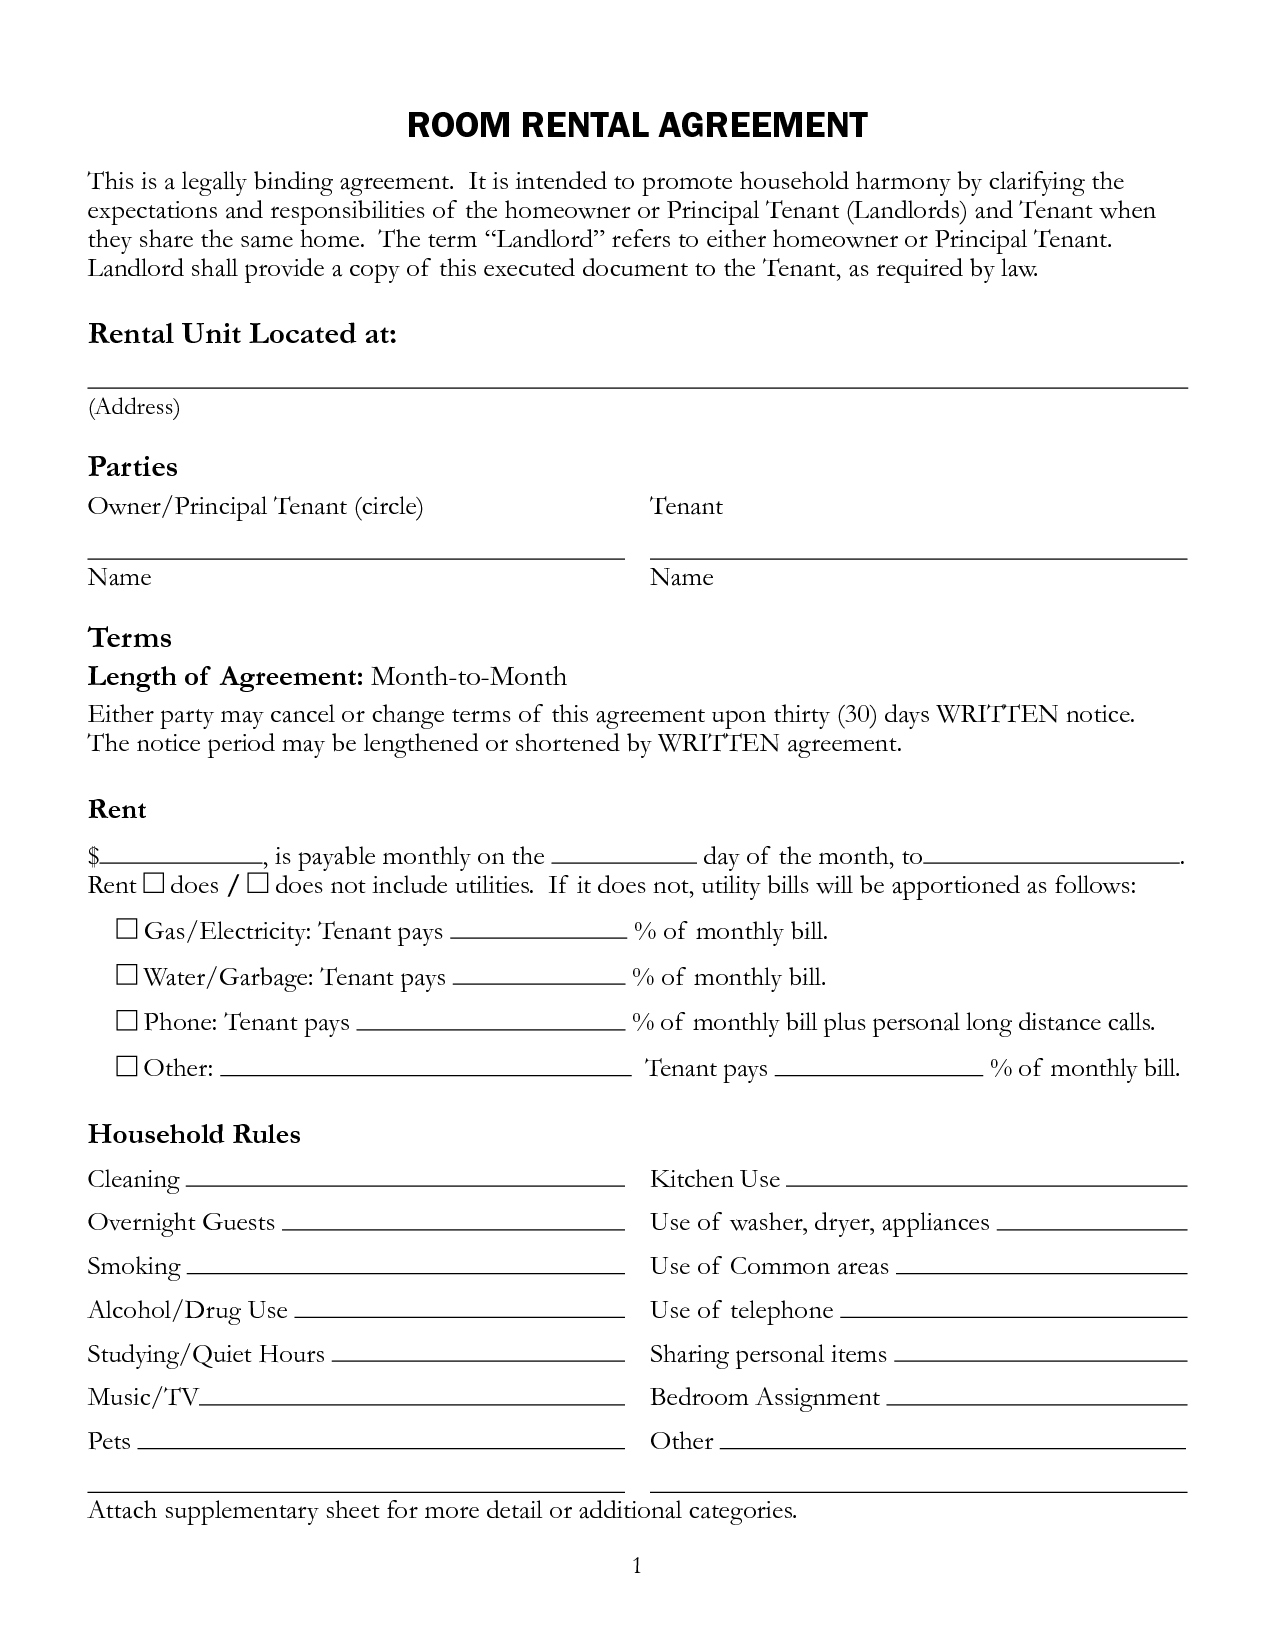 Free Printable Rental Lease Agreement Form Template | Bagnas - Free Printable Roommate Rental Agreement